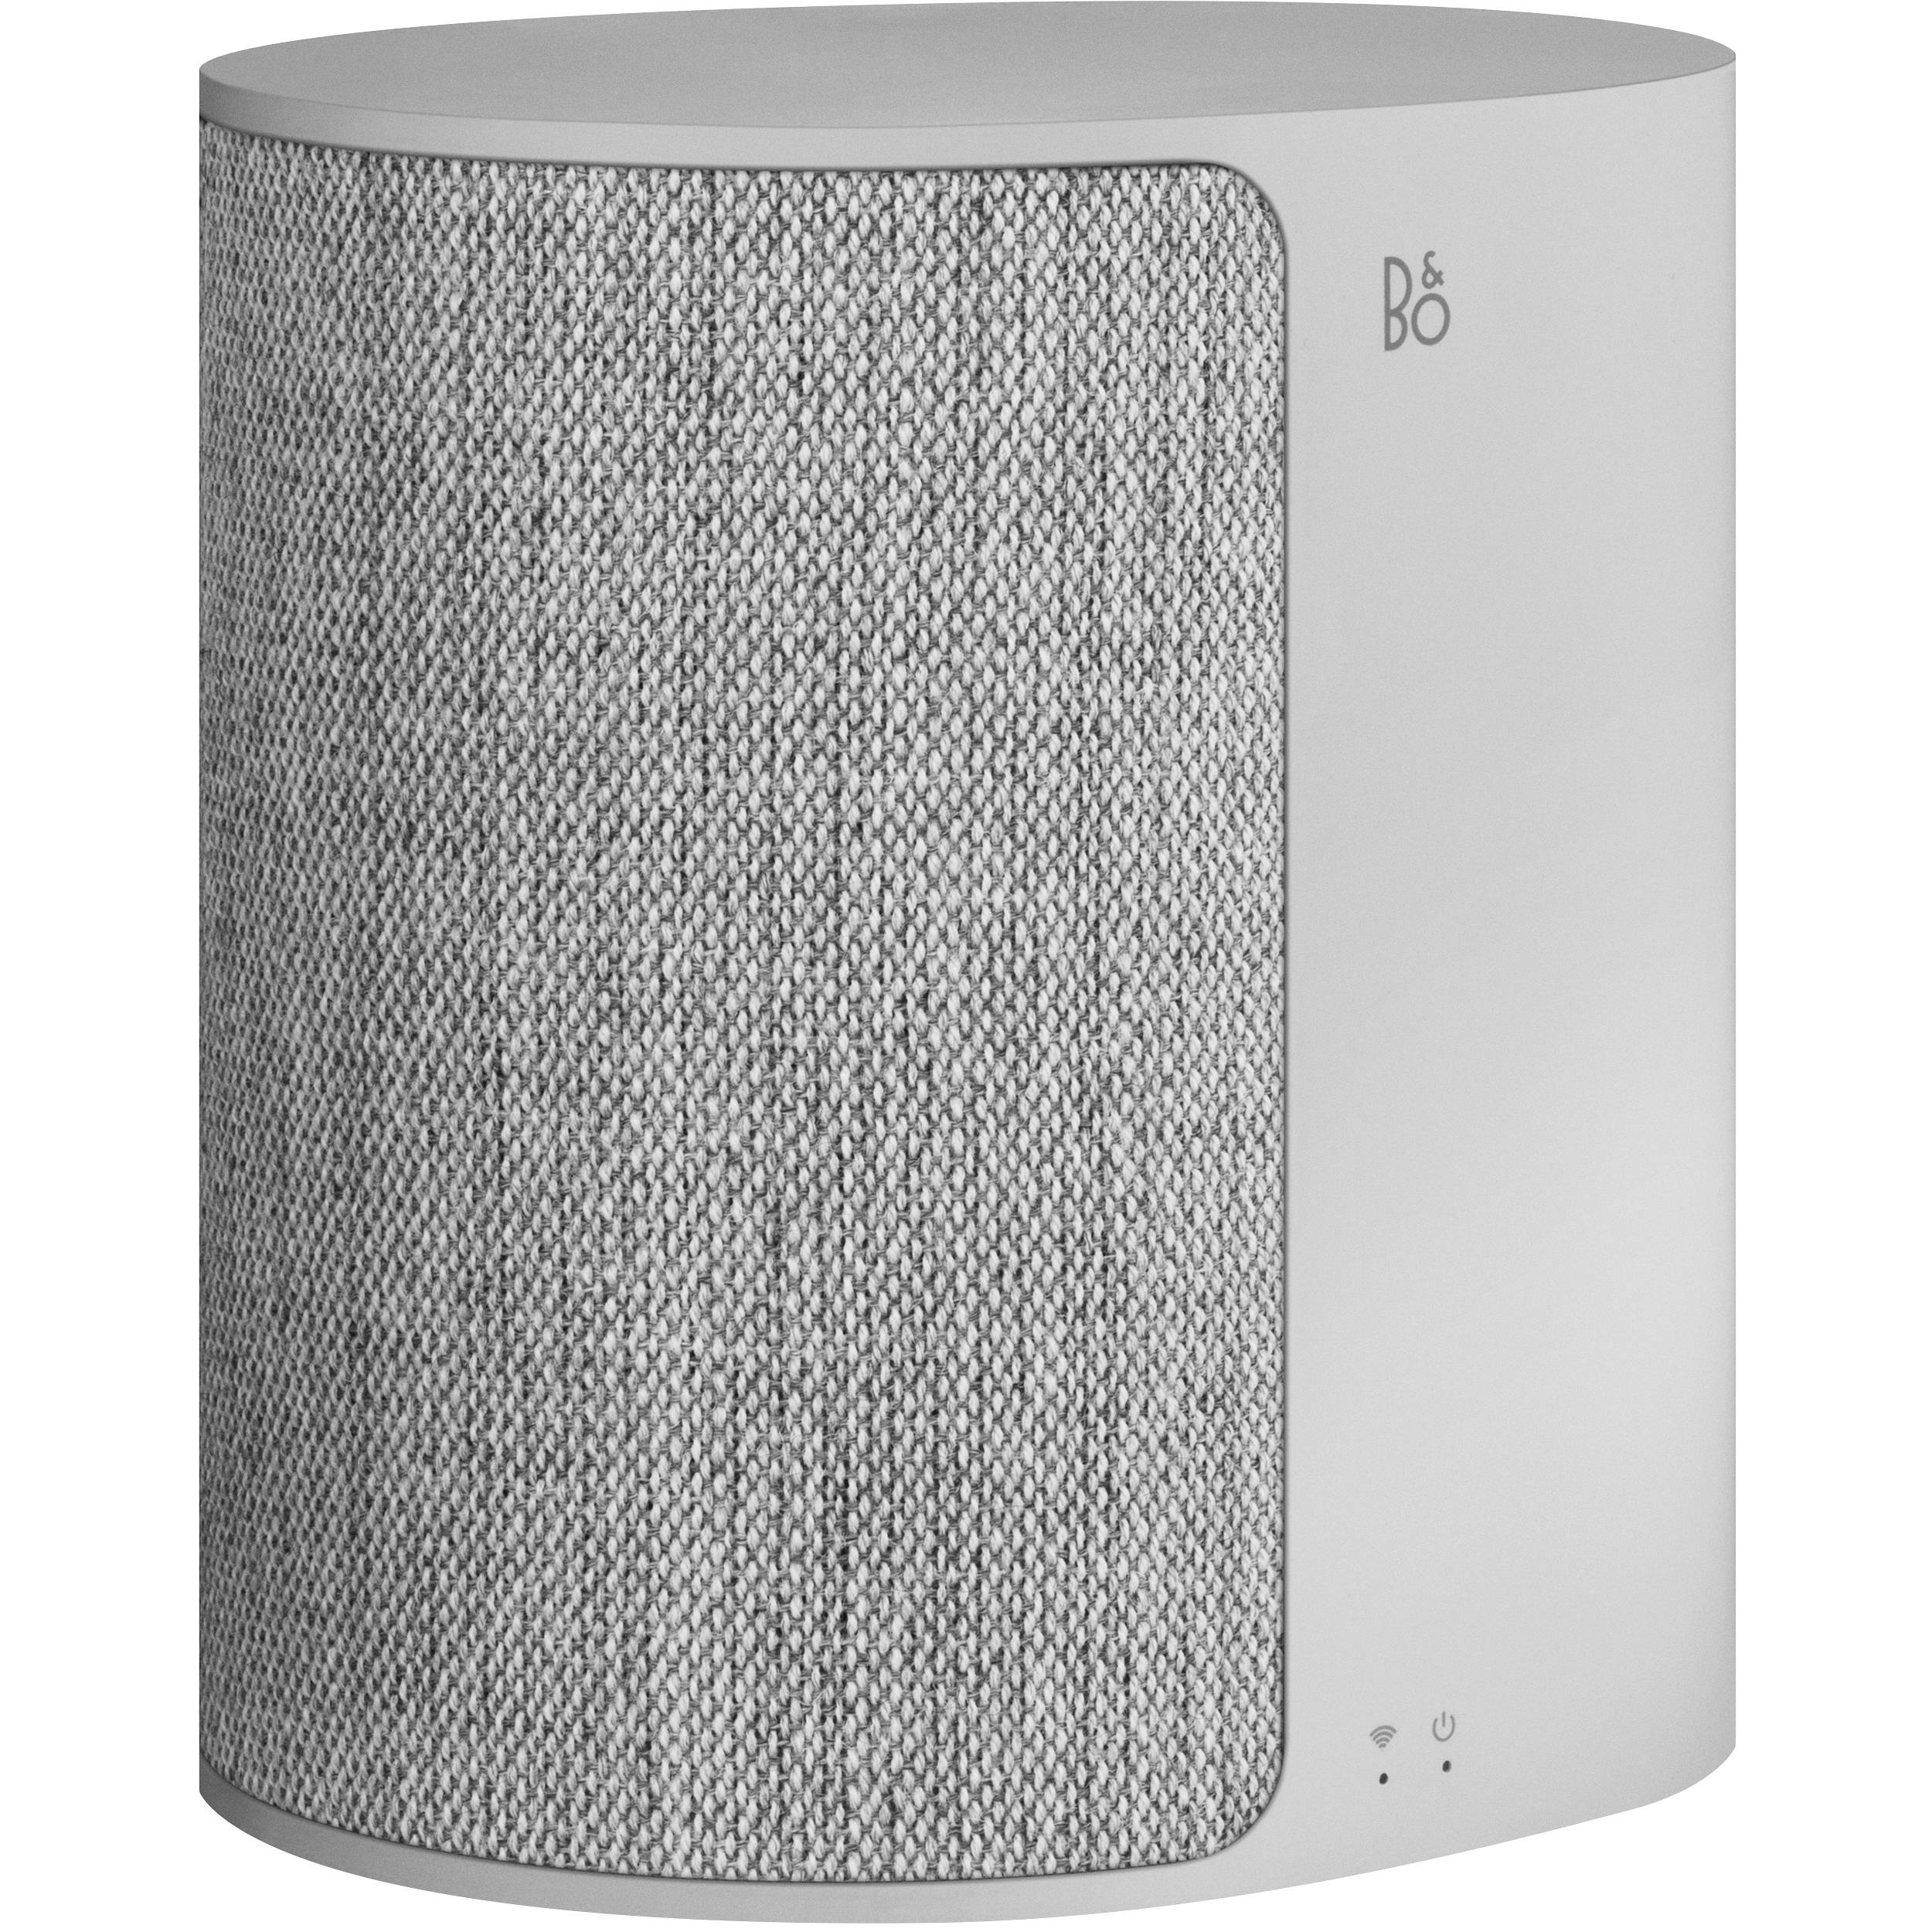 Bang & Olufsen Beoplay M3 Wireless Speaker System 1200323 B&H